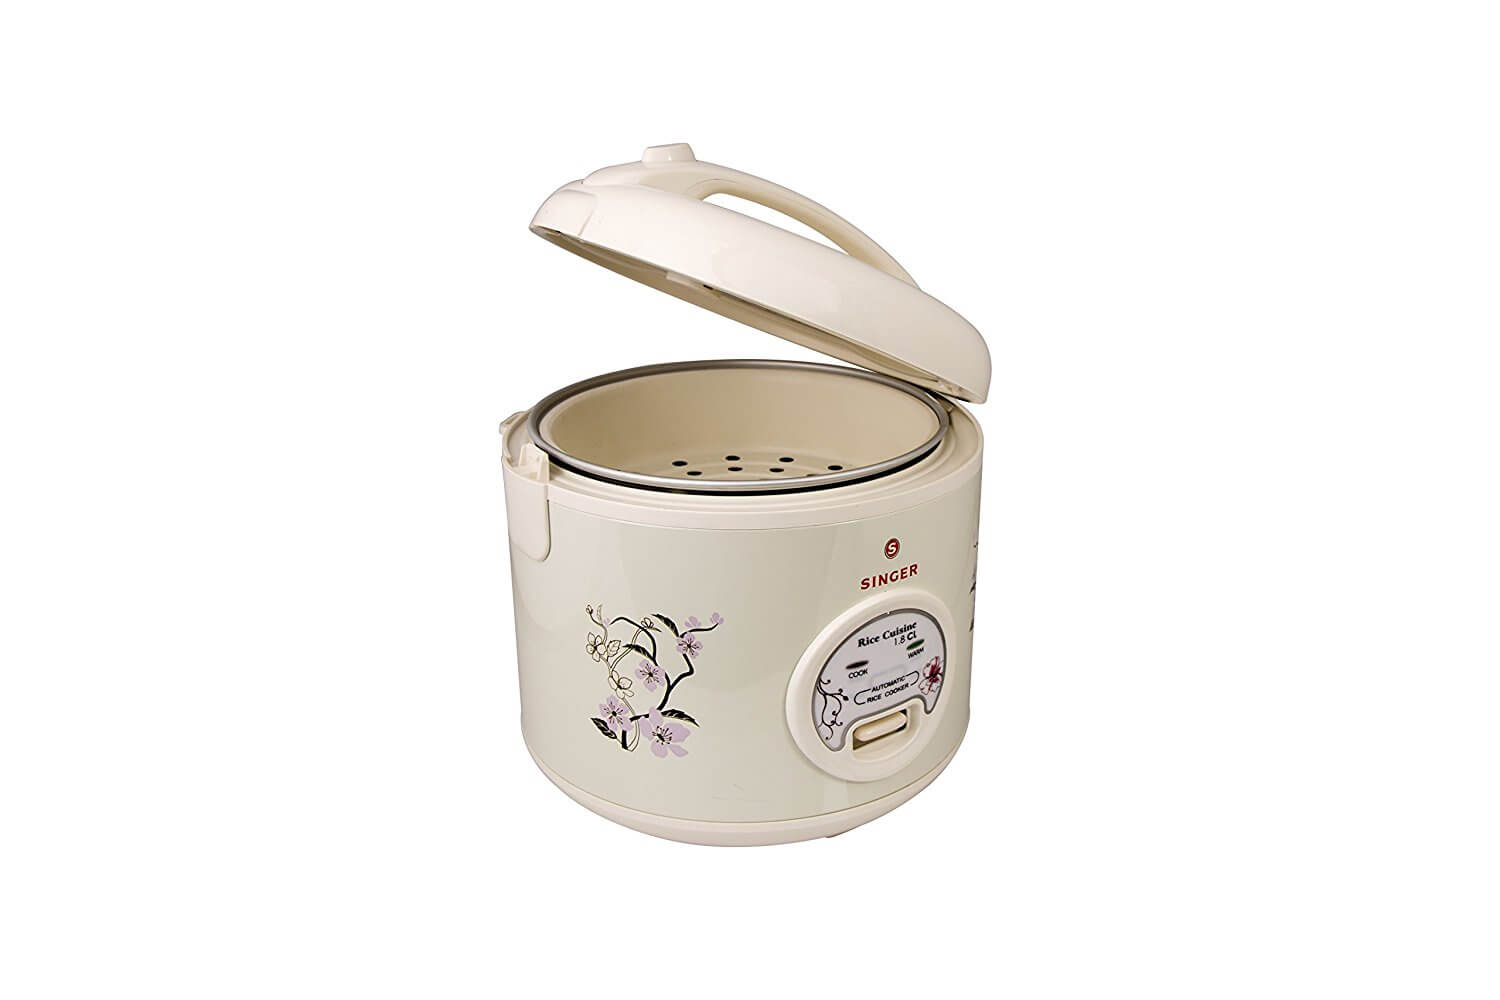 Singer Rice Cuisine Closed Lid Rice Cooker Watts Buy - Singer cuisine